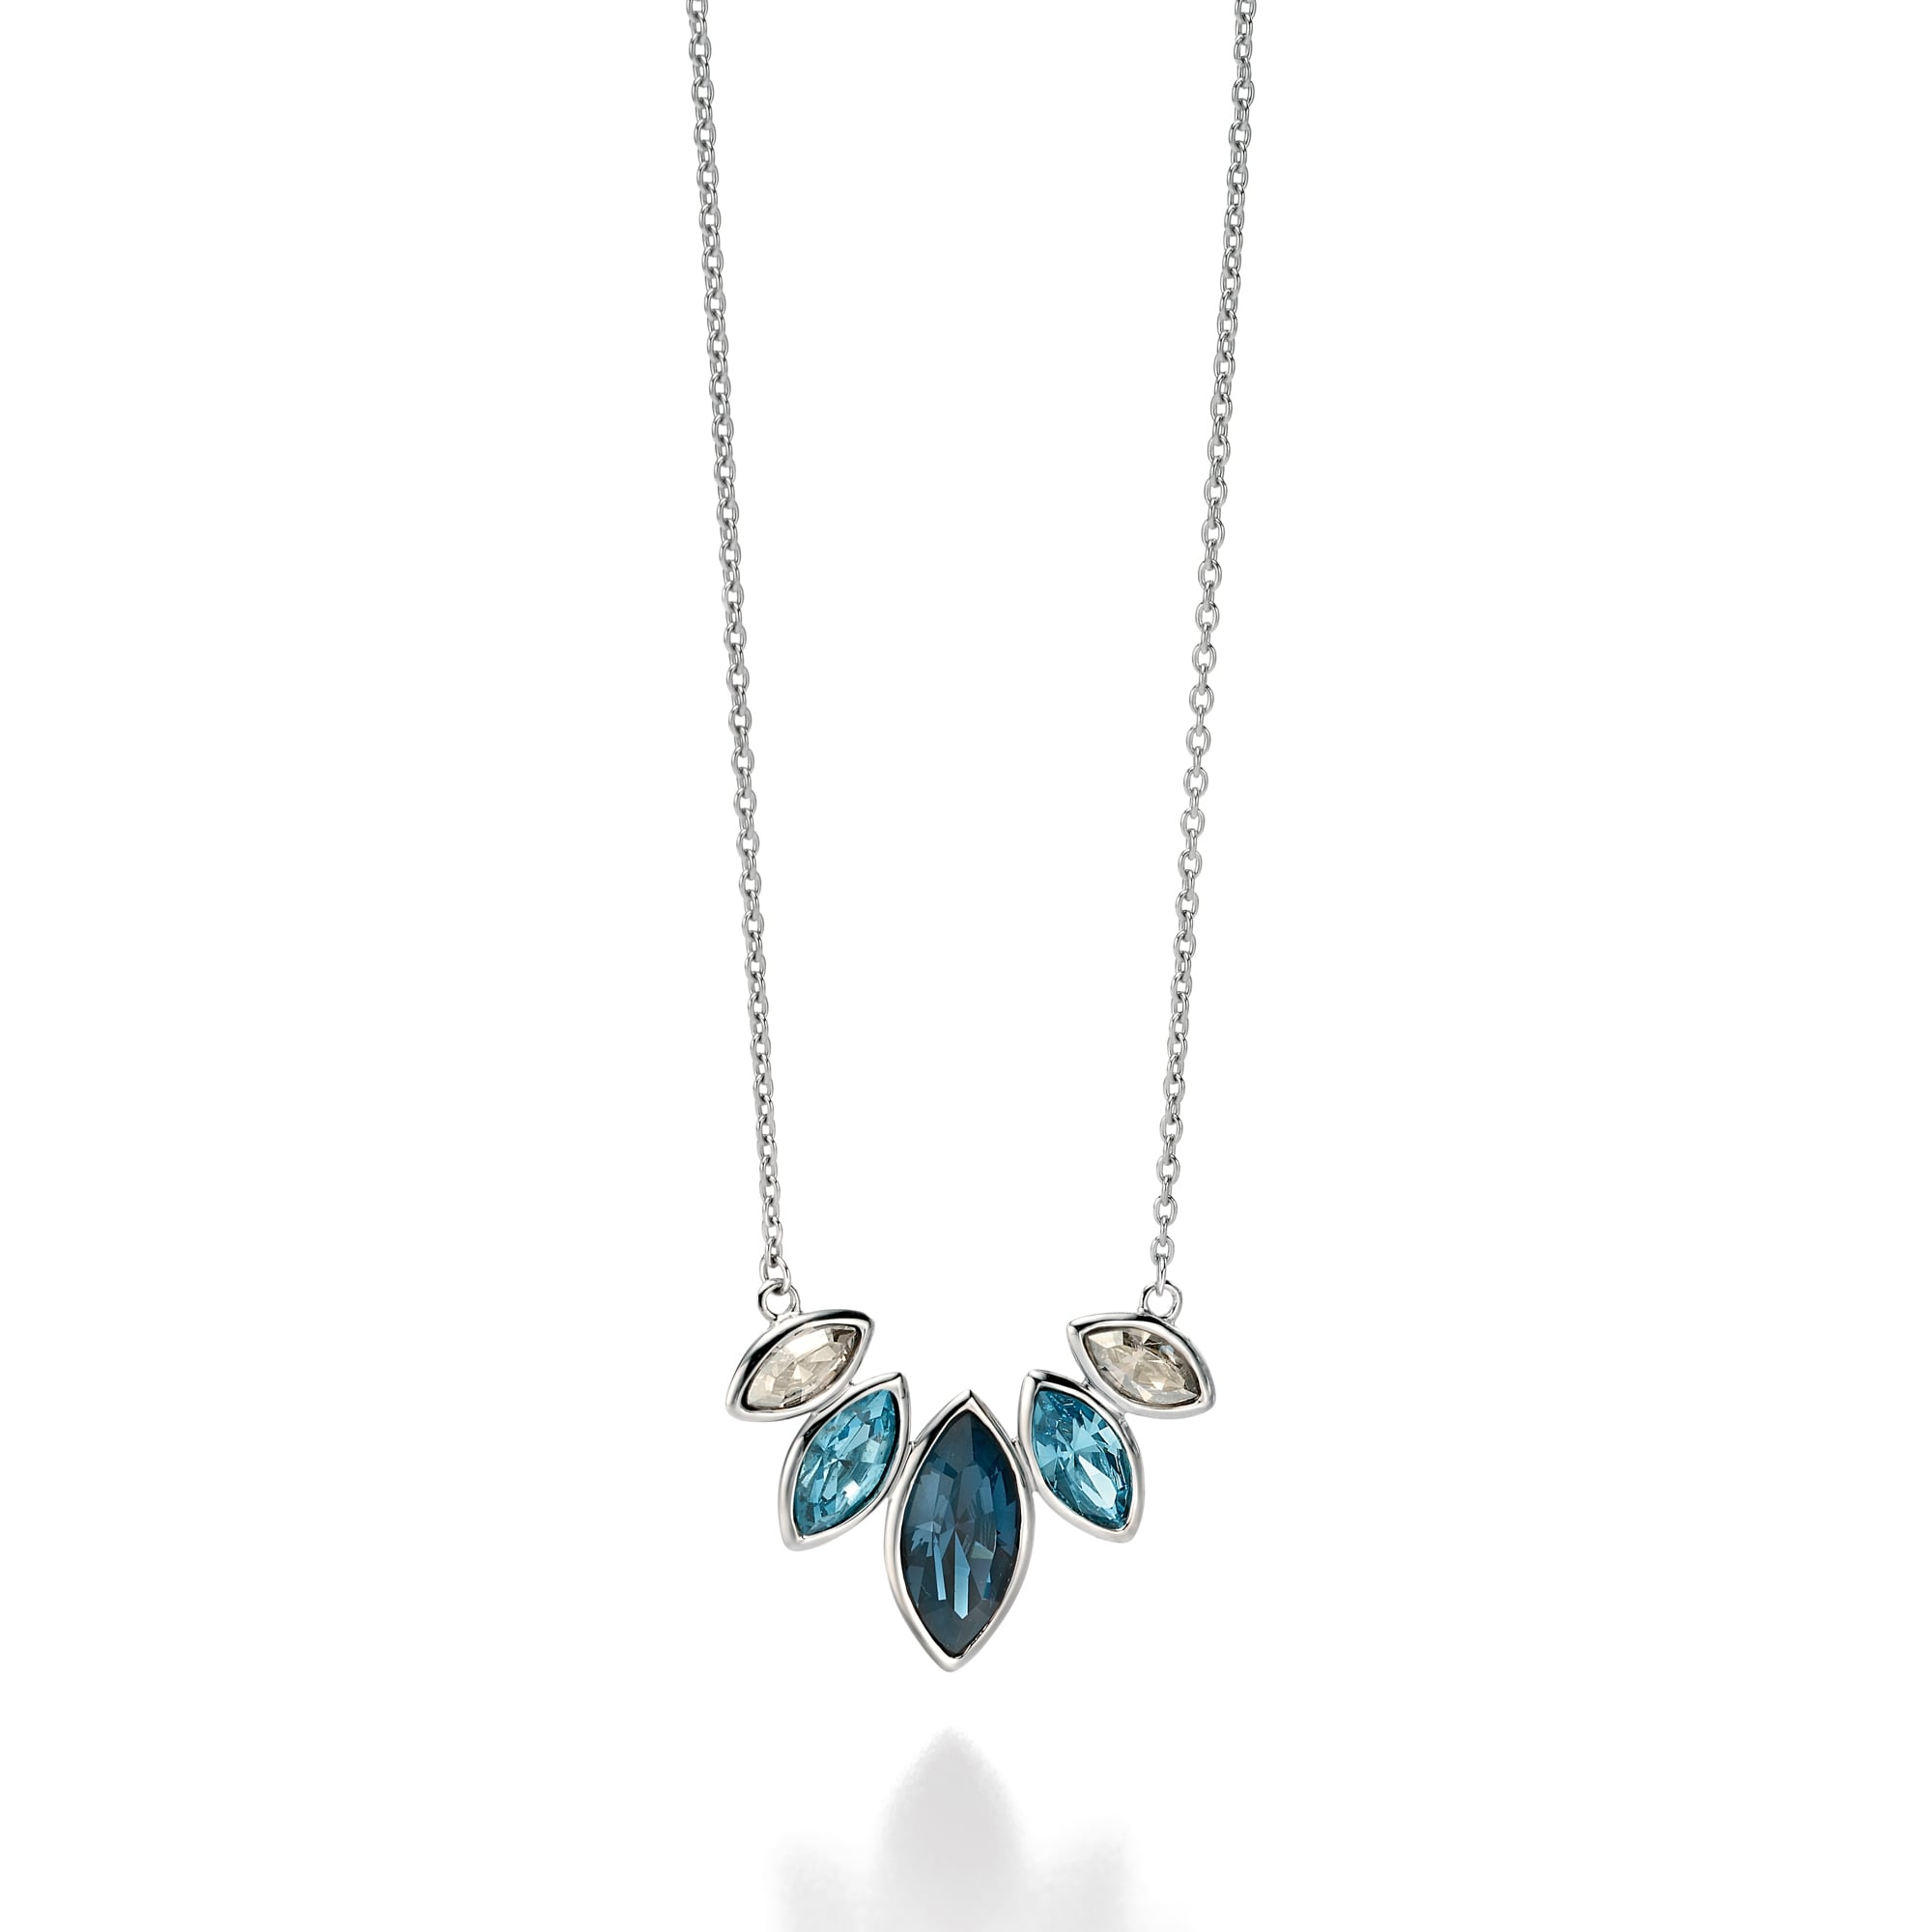 c10b1ee4f85 Fiorelli Silver Necklace Set With Various Blue Shades of Swarovski Crystal